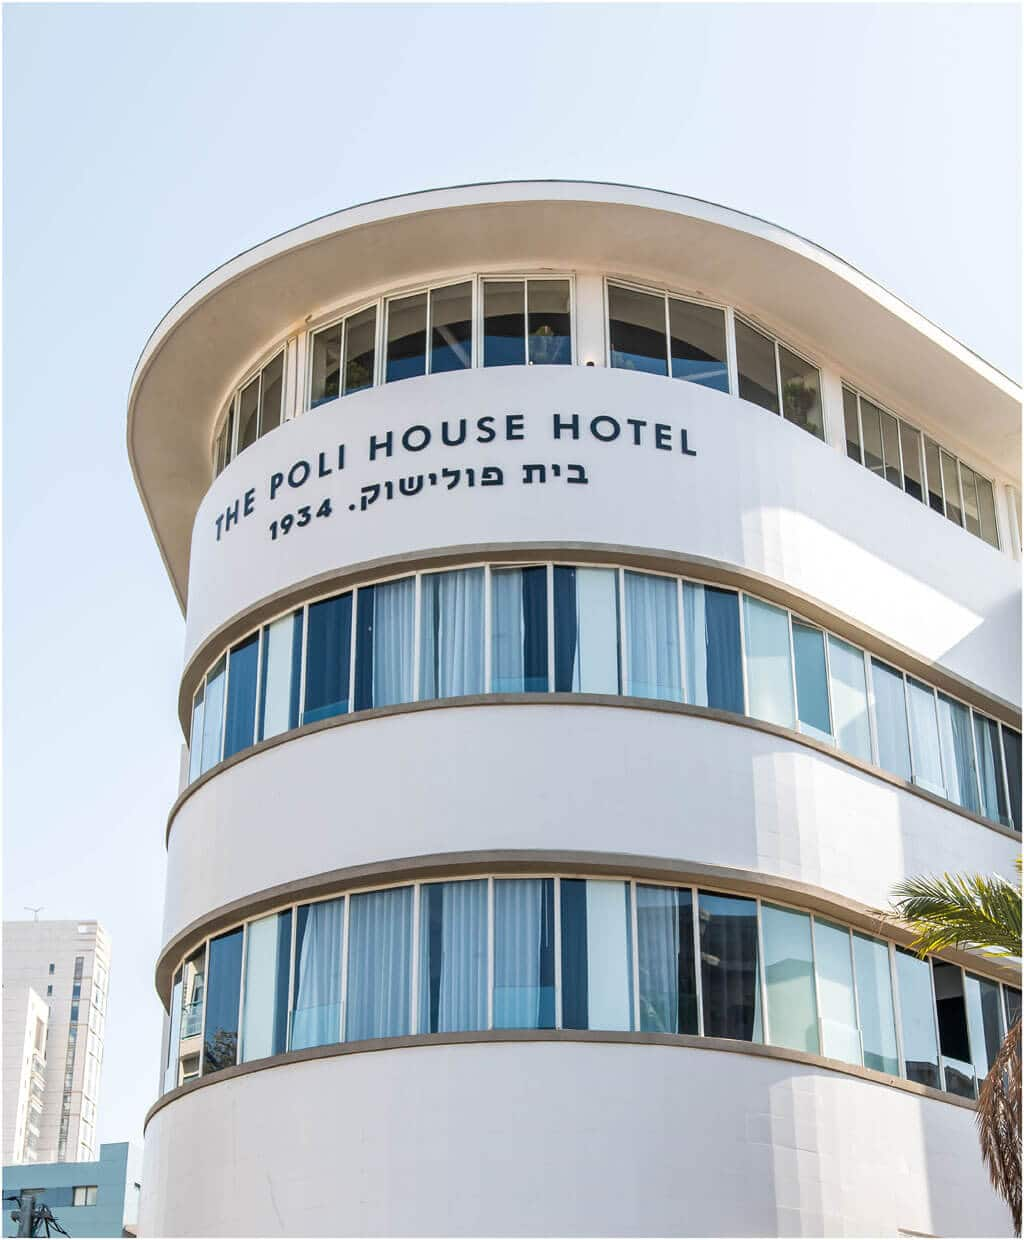 A Weekend Full Of Food And Design In Tel Aviv | The Poli House Boutique Hotel Tel Aviv